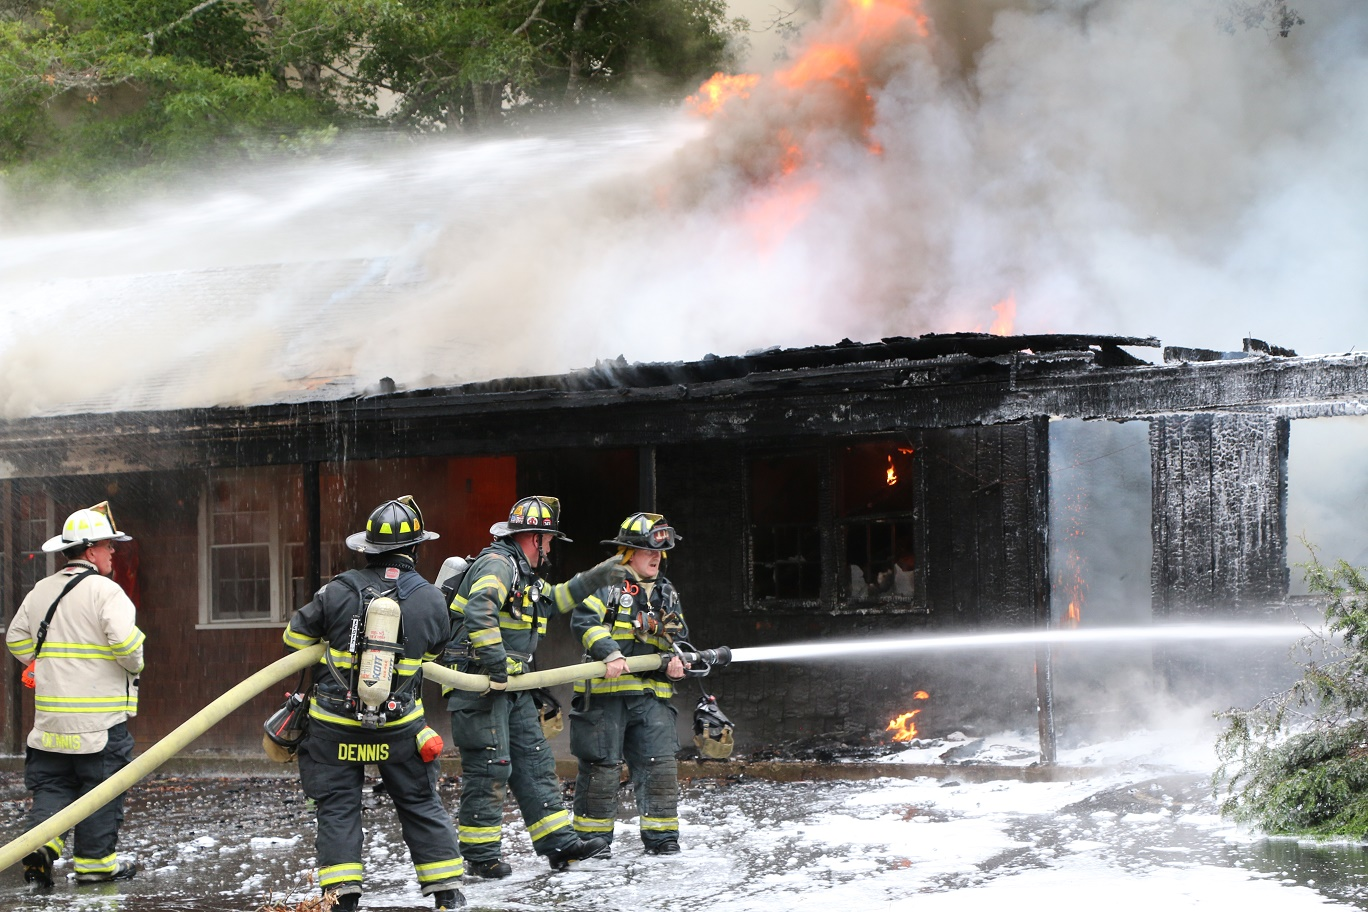 Incendiary Device Found At Least Six Fire Companies